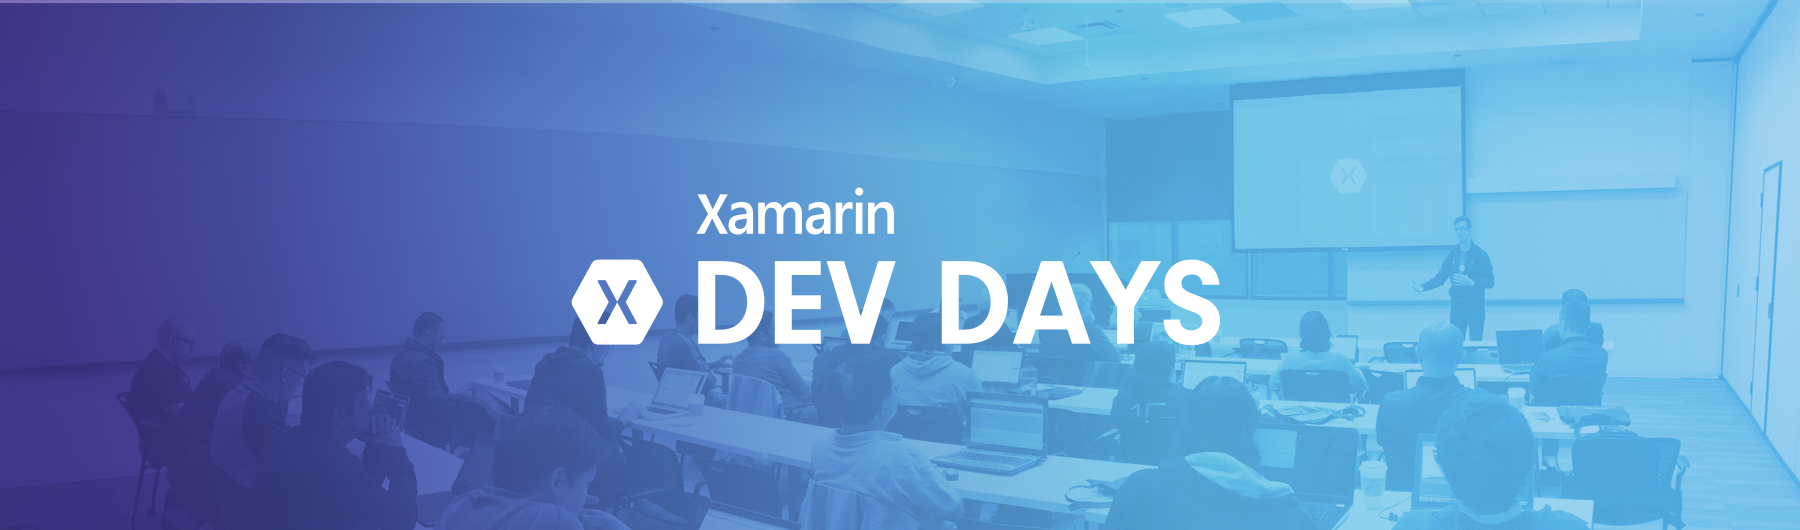 Xamarin Dev Days - Chennai